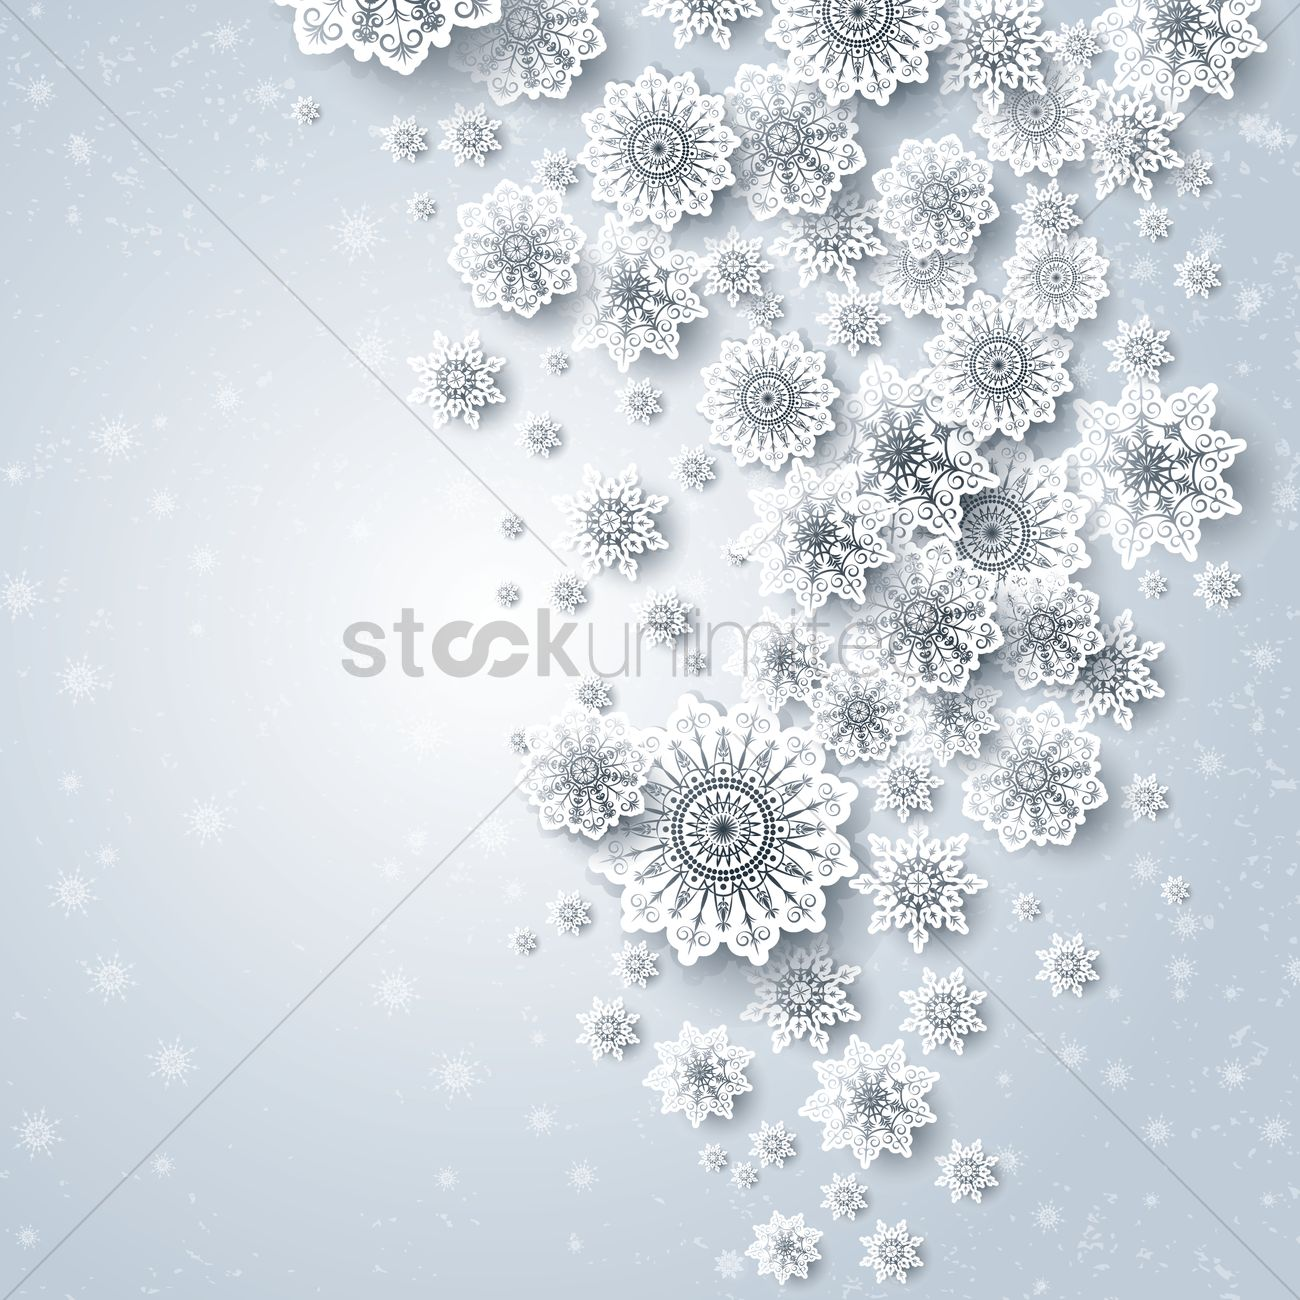 floral snowflakes design background vector graphic